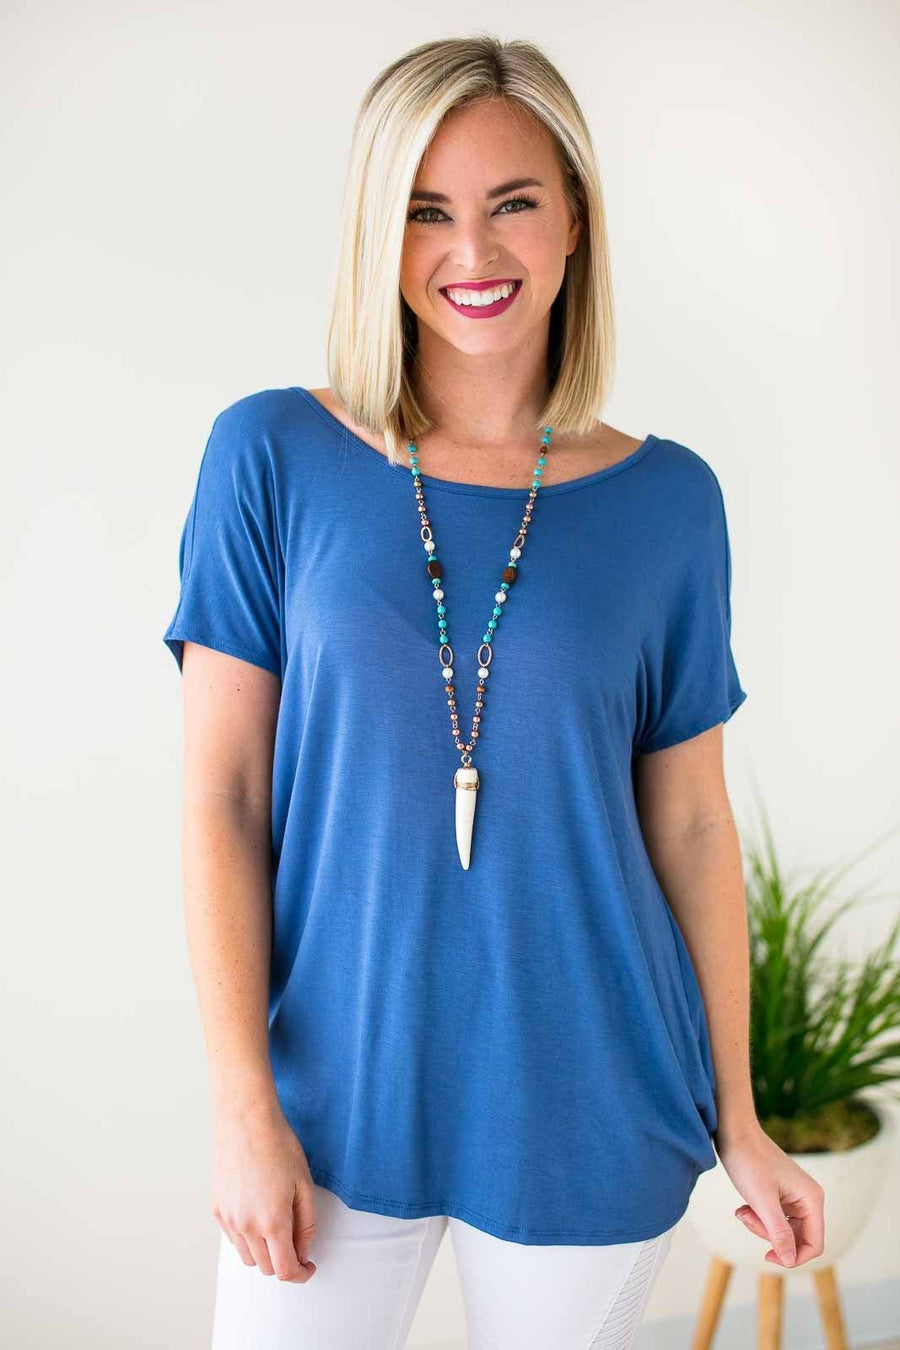 Tops Dancing in the Rain Open Back Top - Lotus Boutique